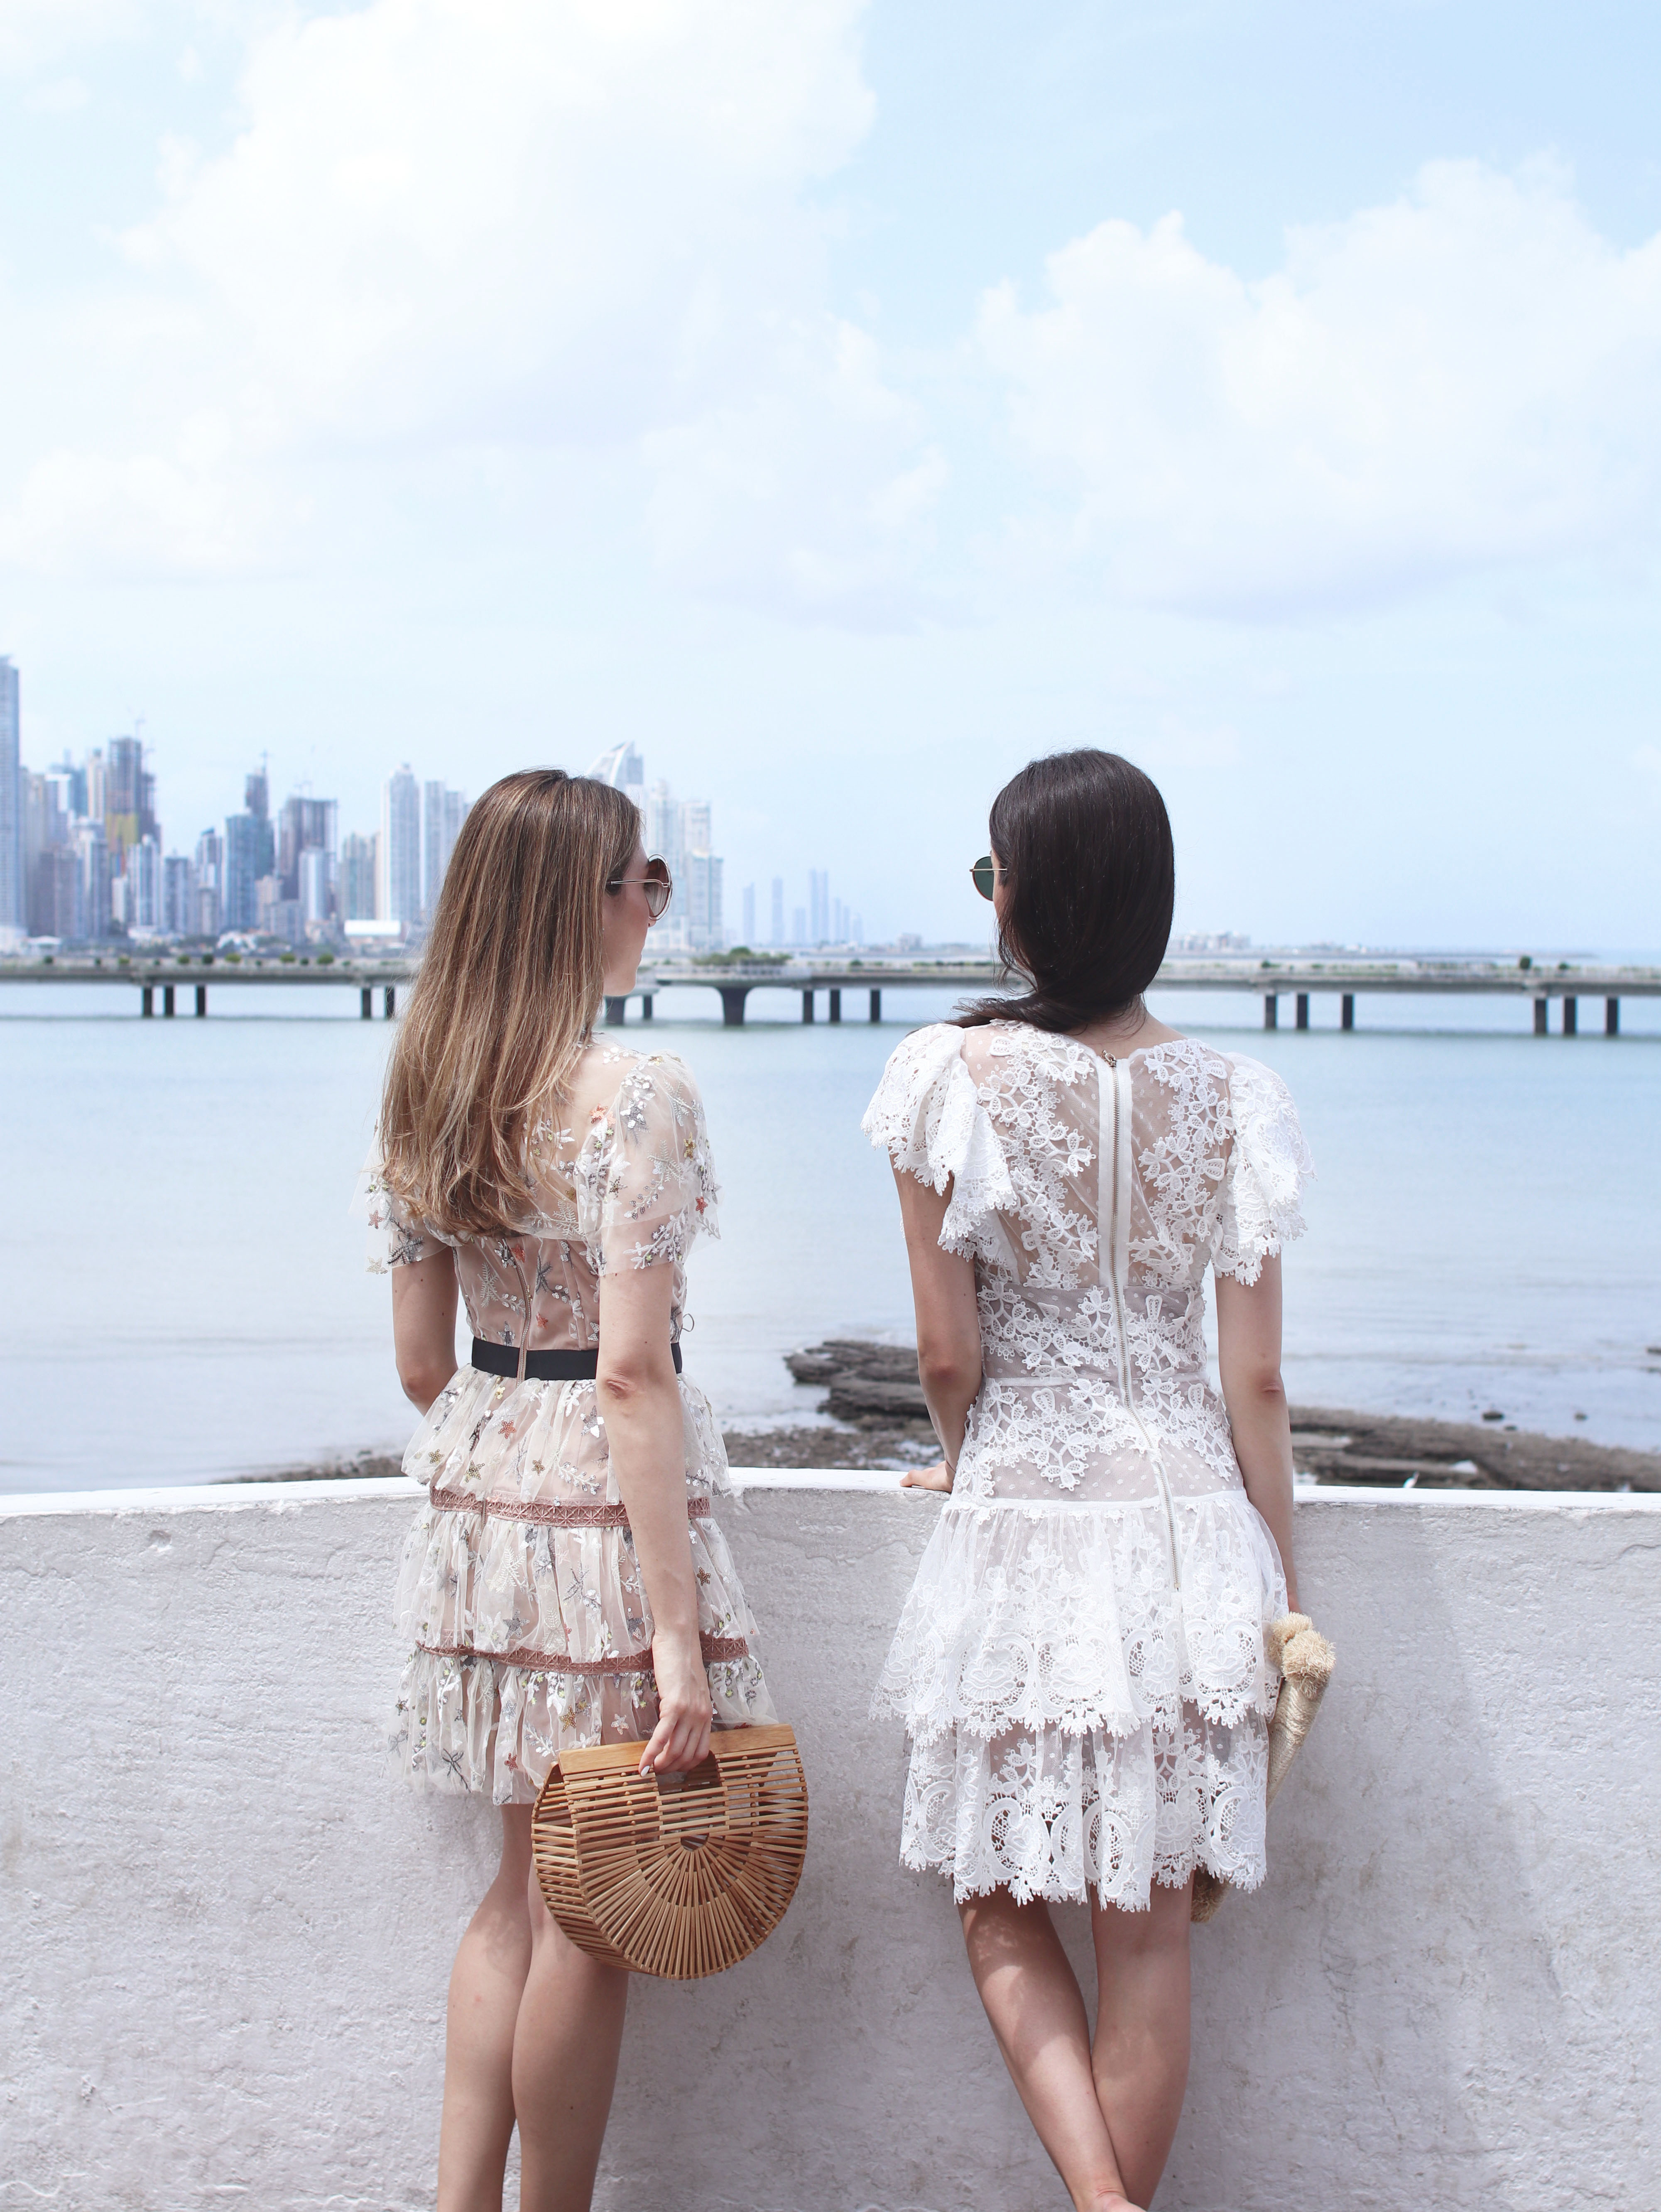 ma-petite-sphere-inspiration-lifestyle-dress-summer-luxurytravel-skyline-style-travel-panama-pty-sisters